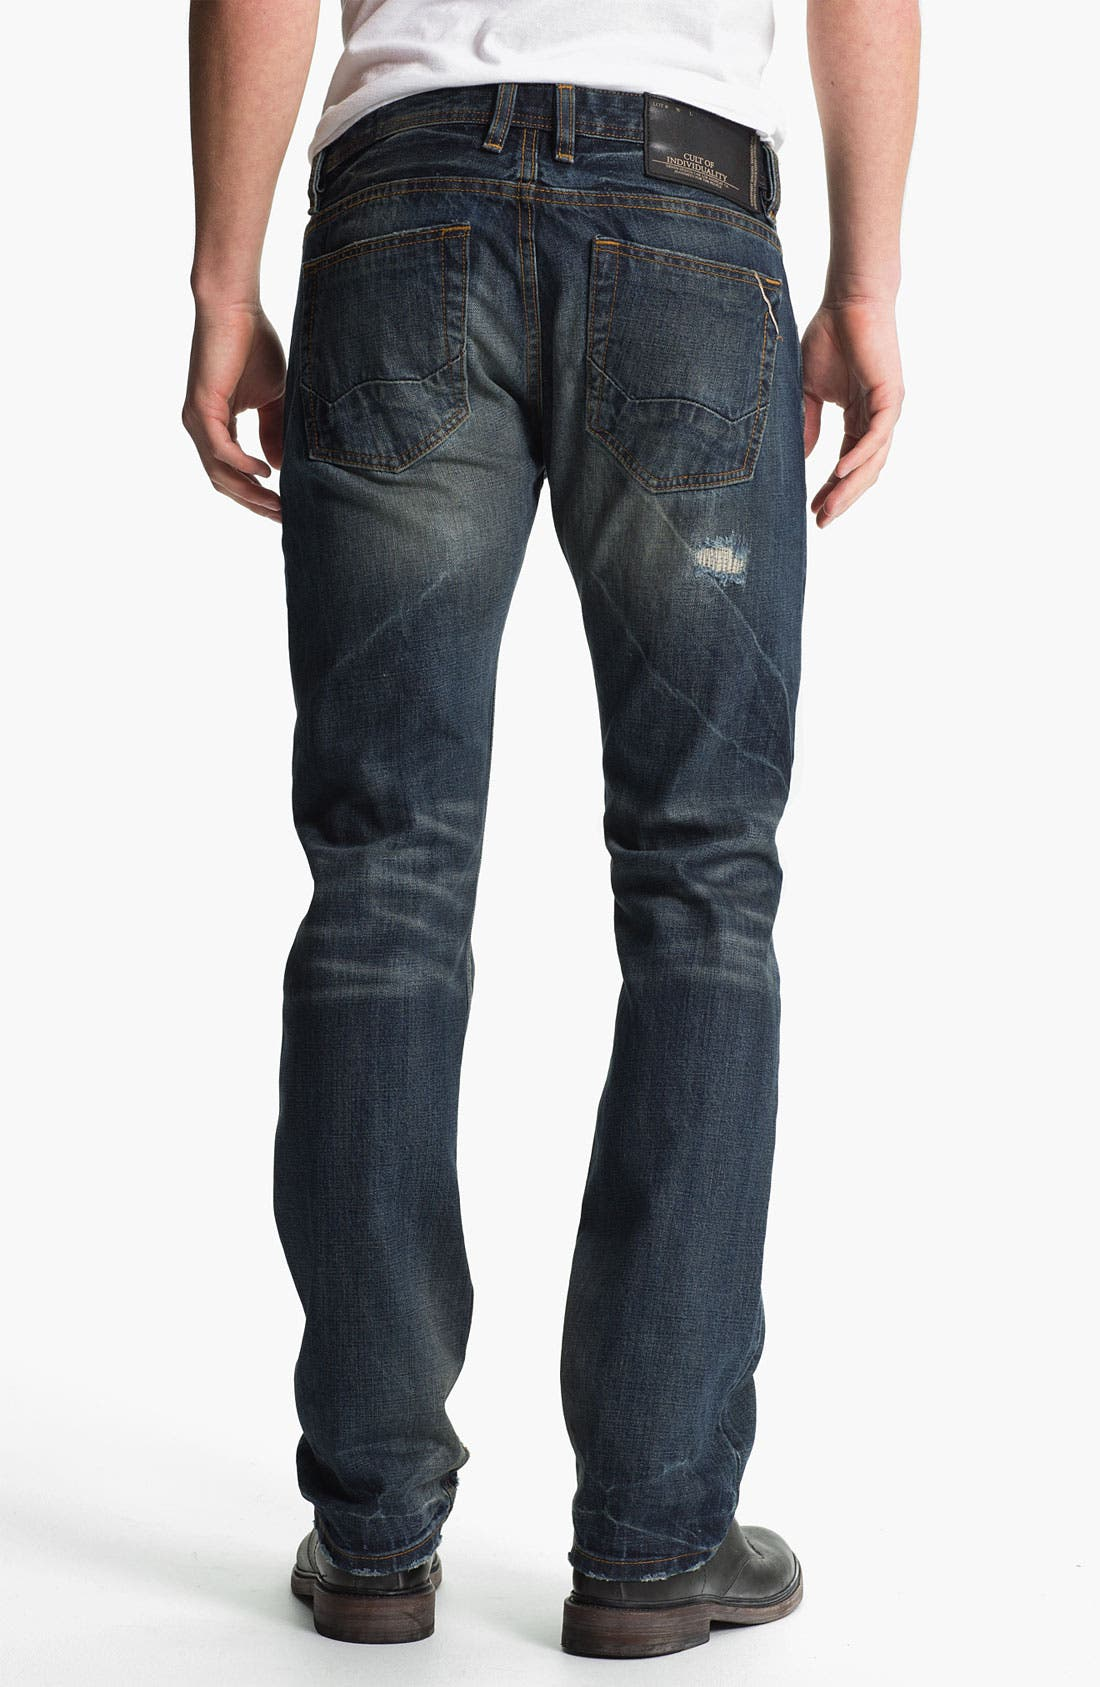 Alternate Image 1 Selected - Cult of Individuality 'Rebel' Straight Leg Jeans (Greaser)